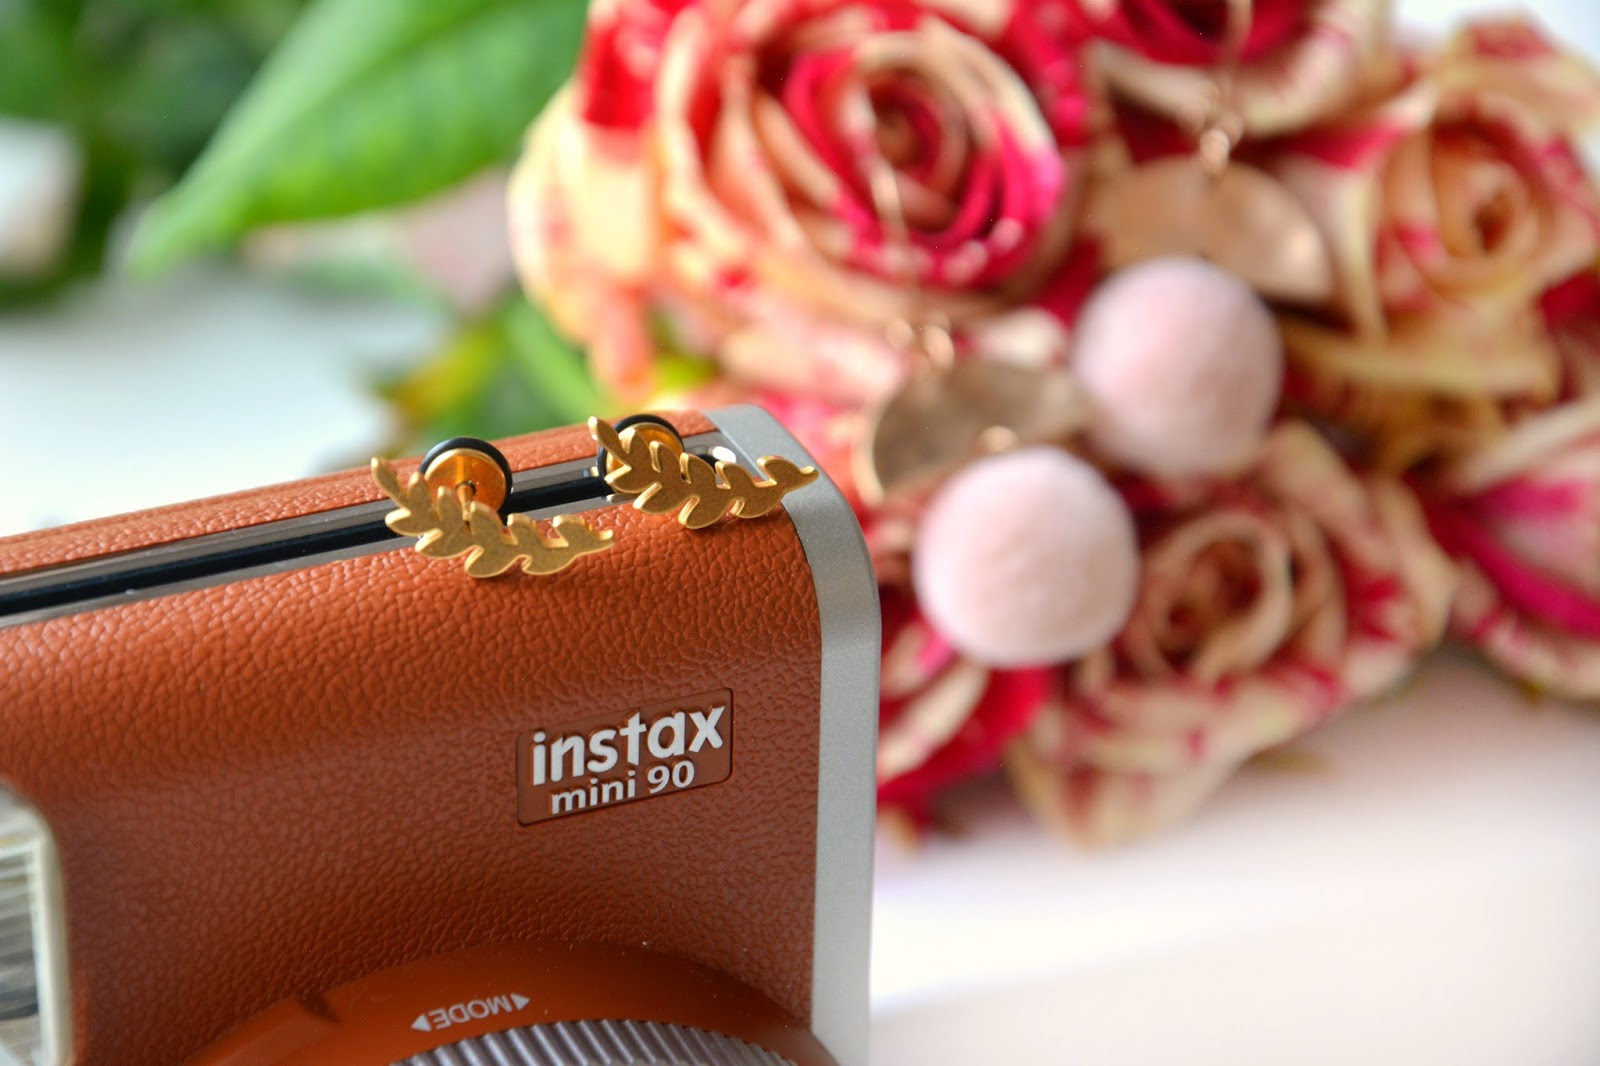 Instax Mini 90 Retro Camera; Happiness Boutique Leafy Fern Stud Earrings; Happiness Boutique Pom Pom Earrings; Marbled Red & Cream Roses